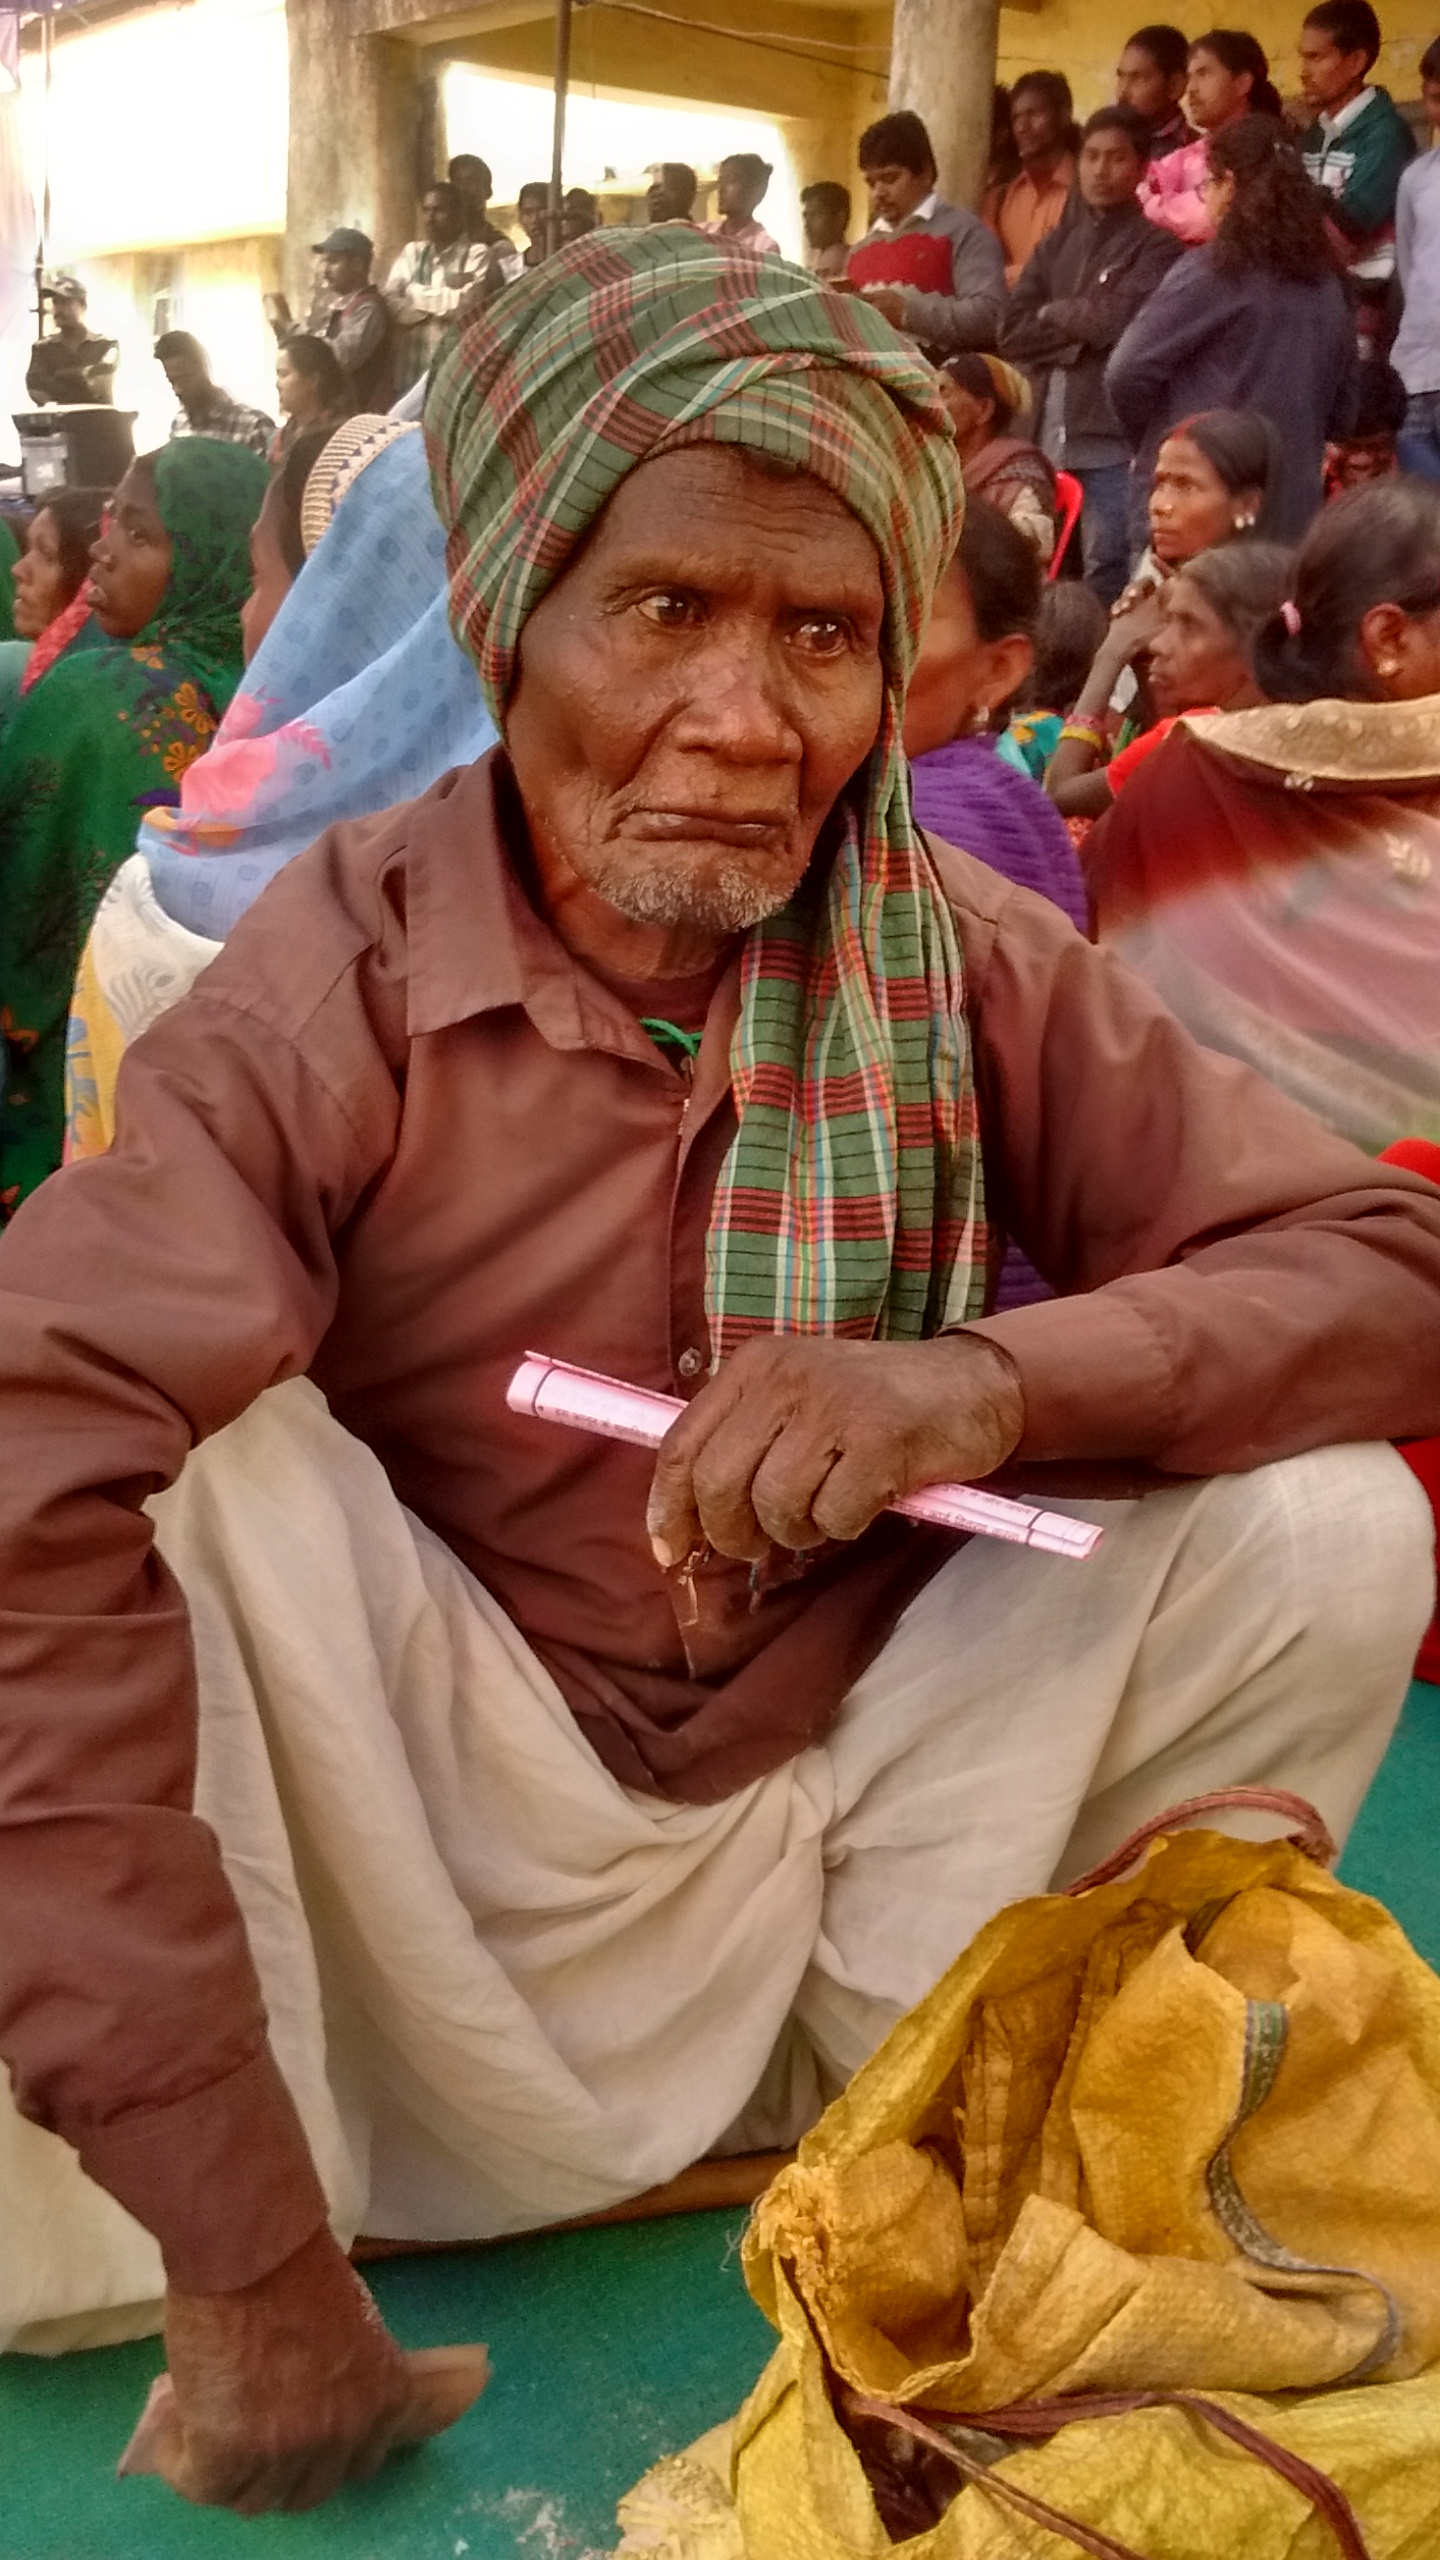 Butan Singh's ration was stopped a month after Jharkhand made it mandatory to link ration cards with Aadhaar. Photo credit: Anumeha Yadav